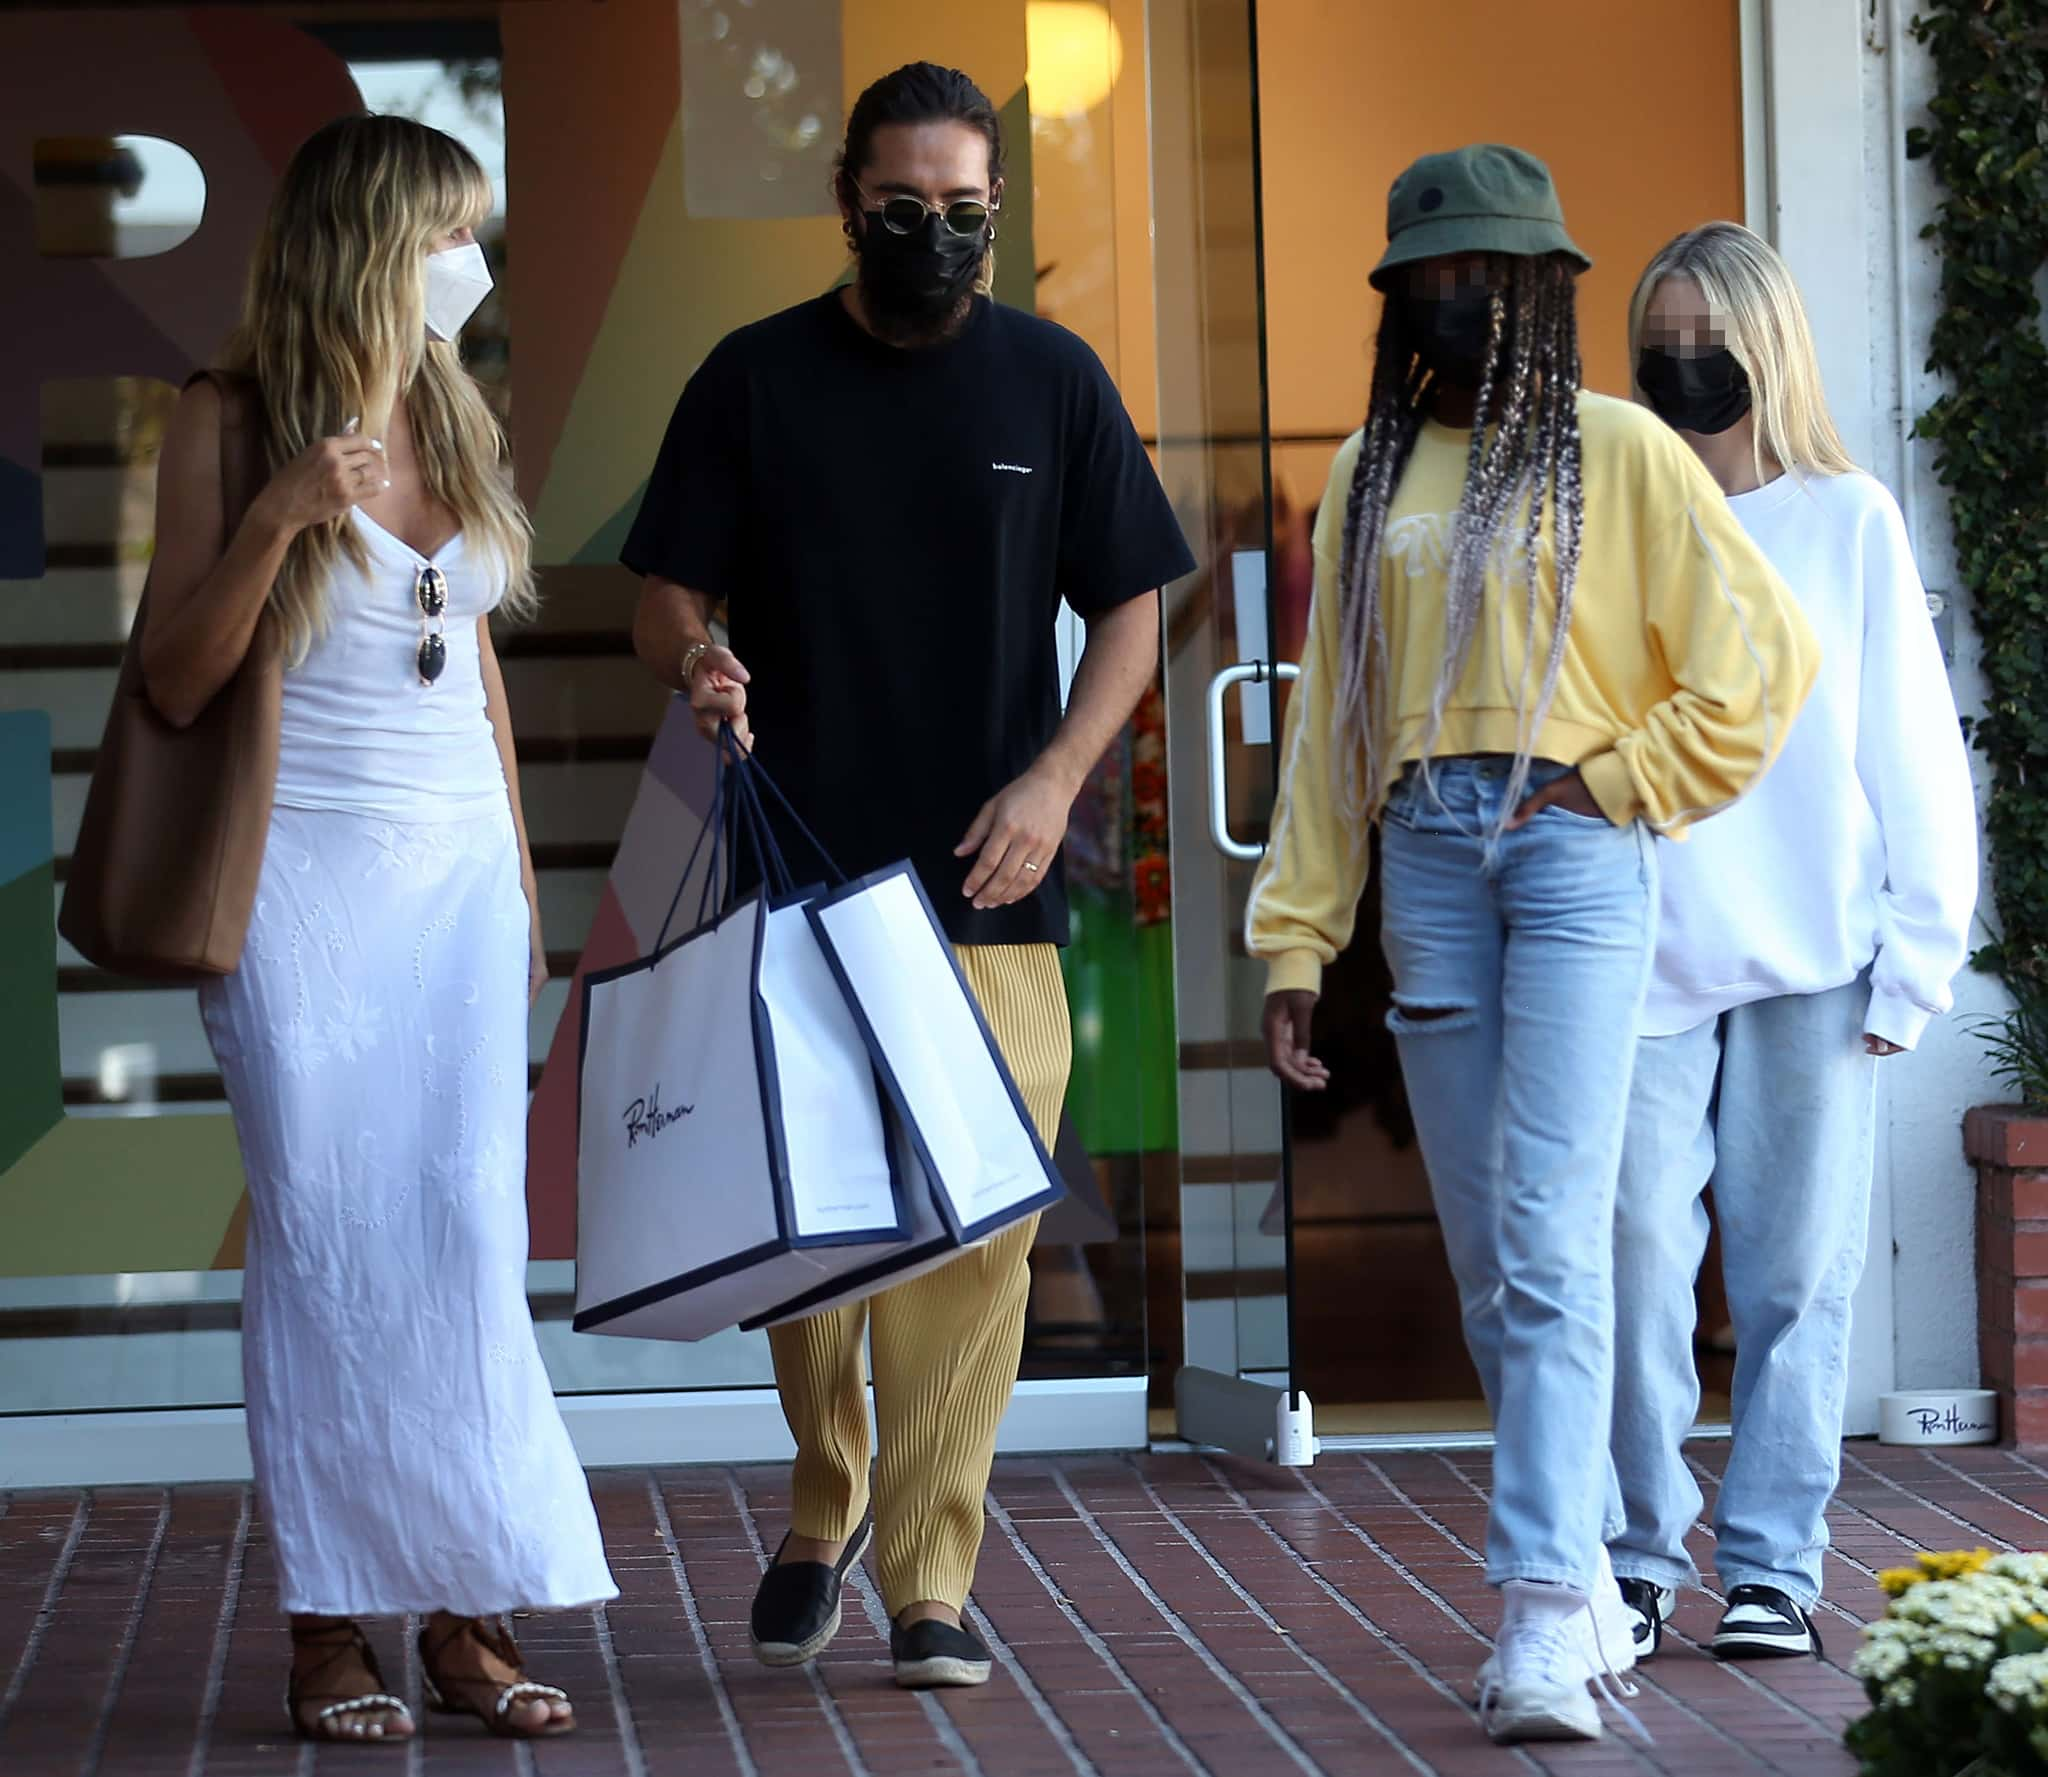 Heidi Klum out shopping with husband Tom Kaulitz and daughters Leni and Lou in West Hollywood on July 3, 2021